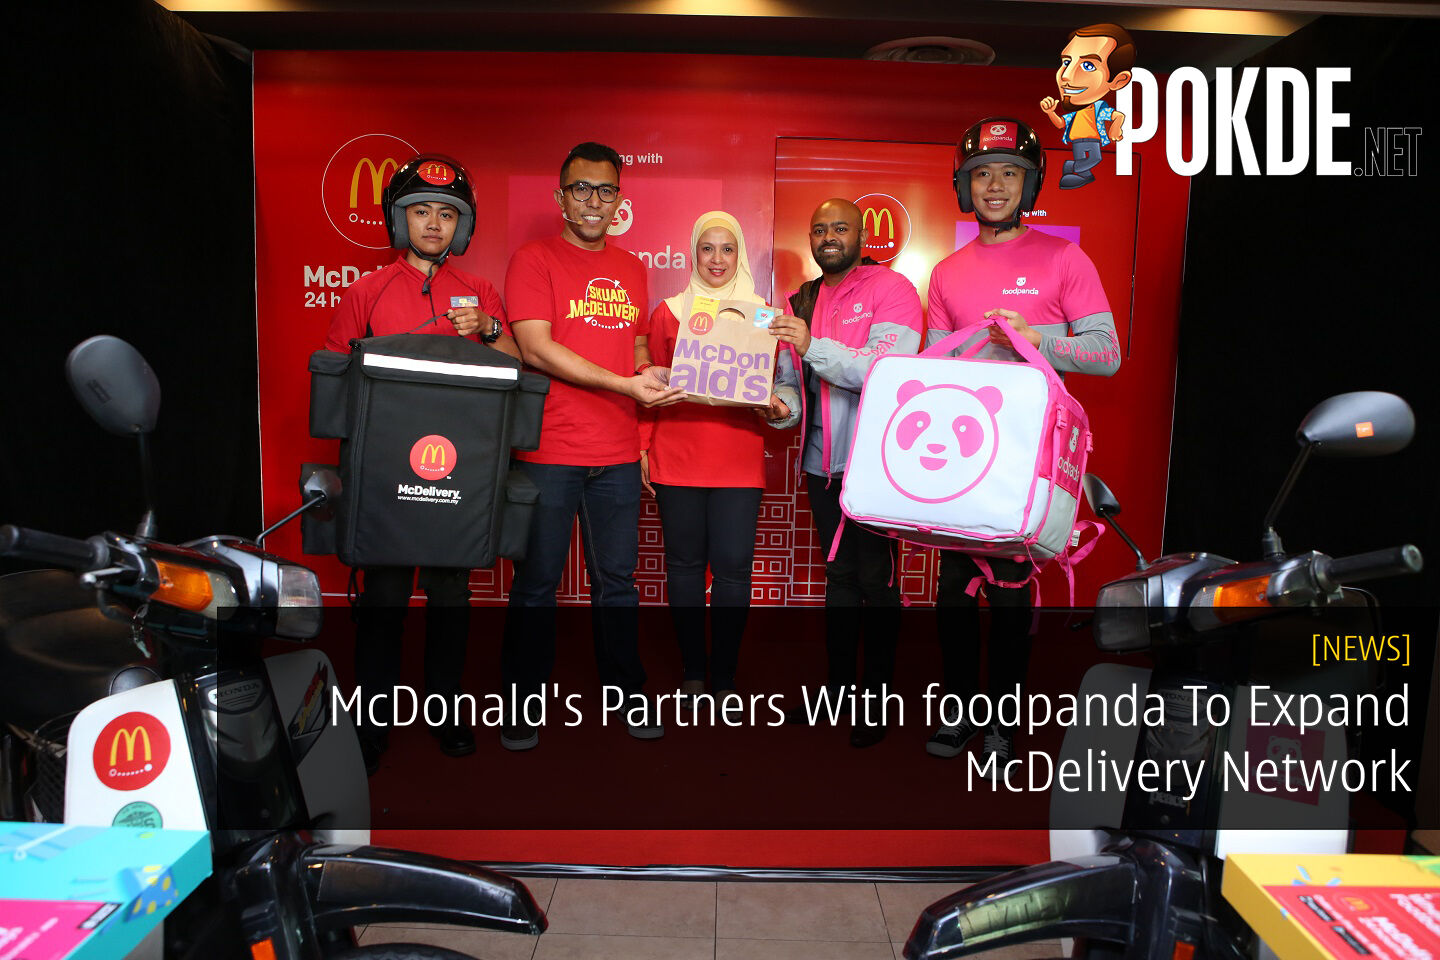 McDonald's Partners With foodpanda To Expand McDelivery Network 31